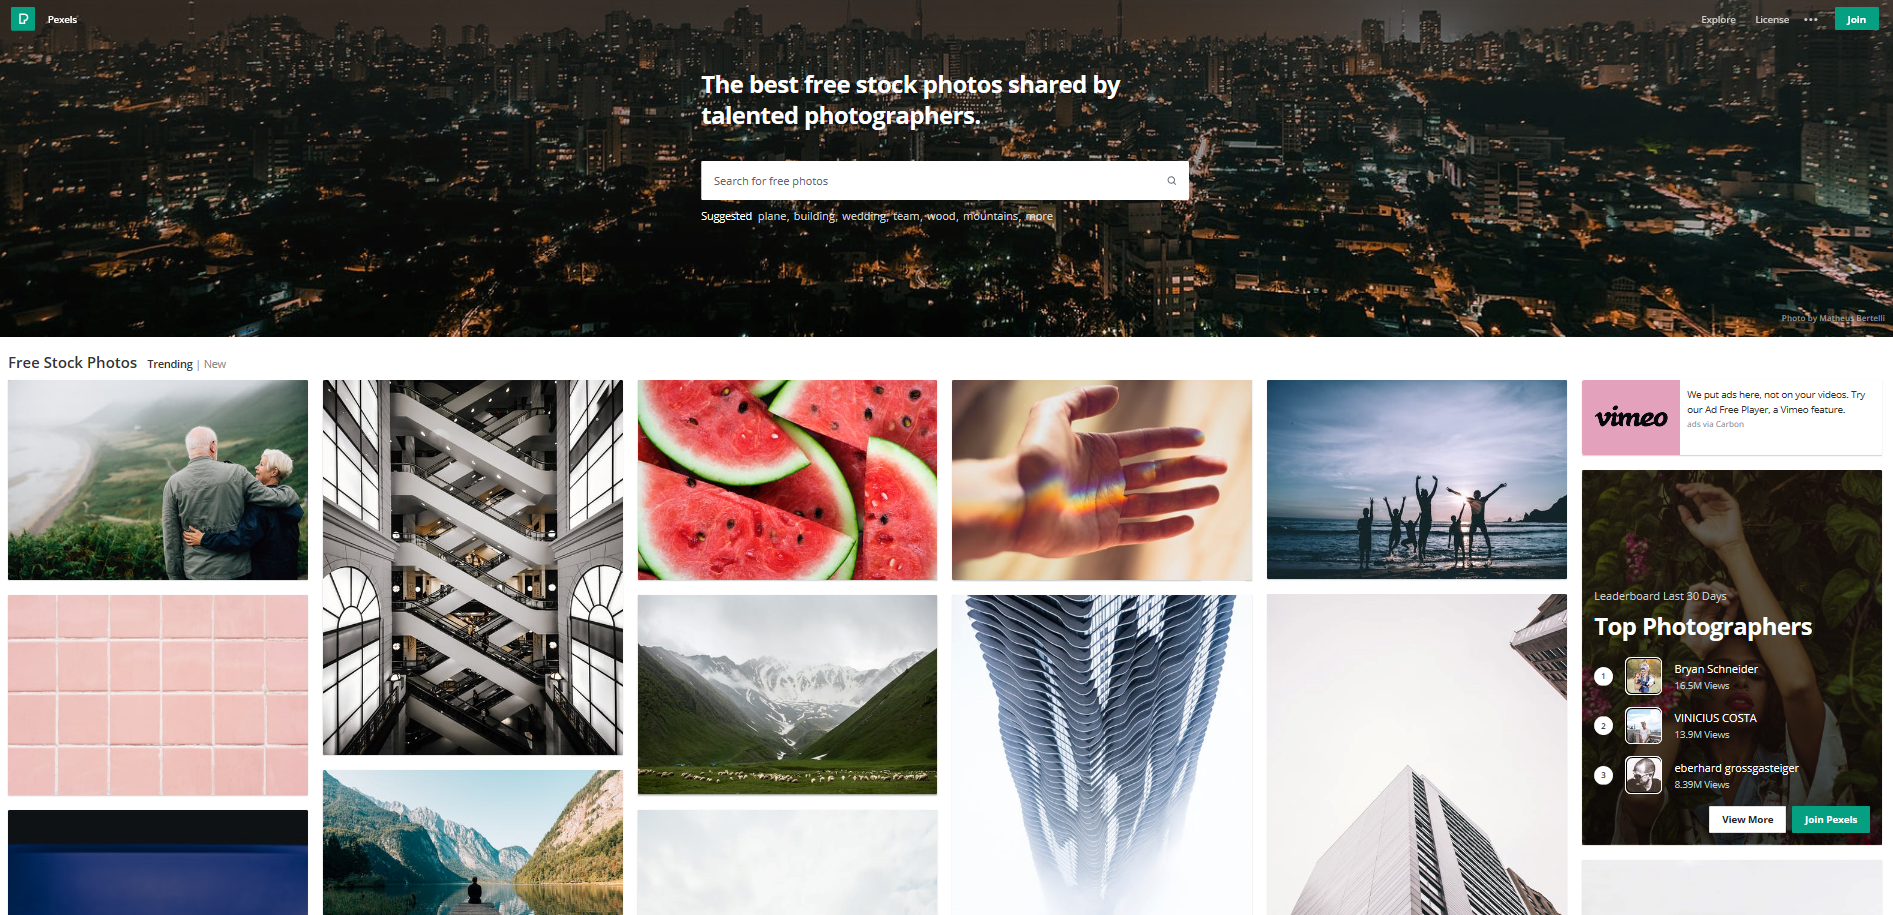 Pexels is a free stock image platform that lets users download high quality photos without attribution.